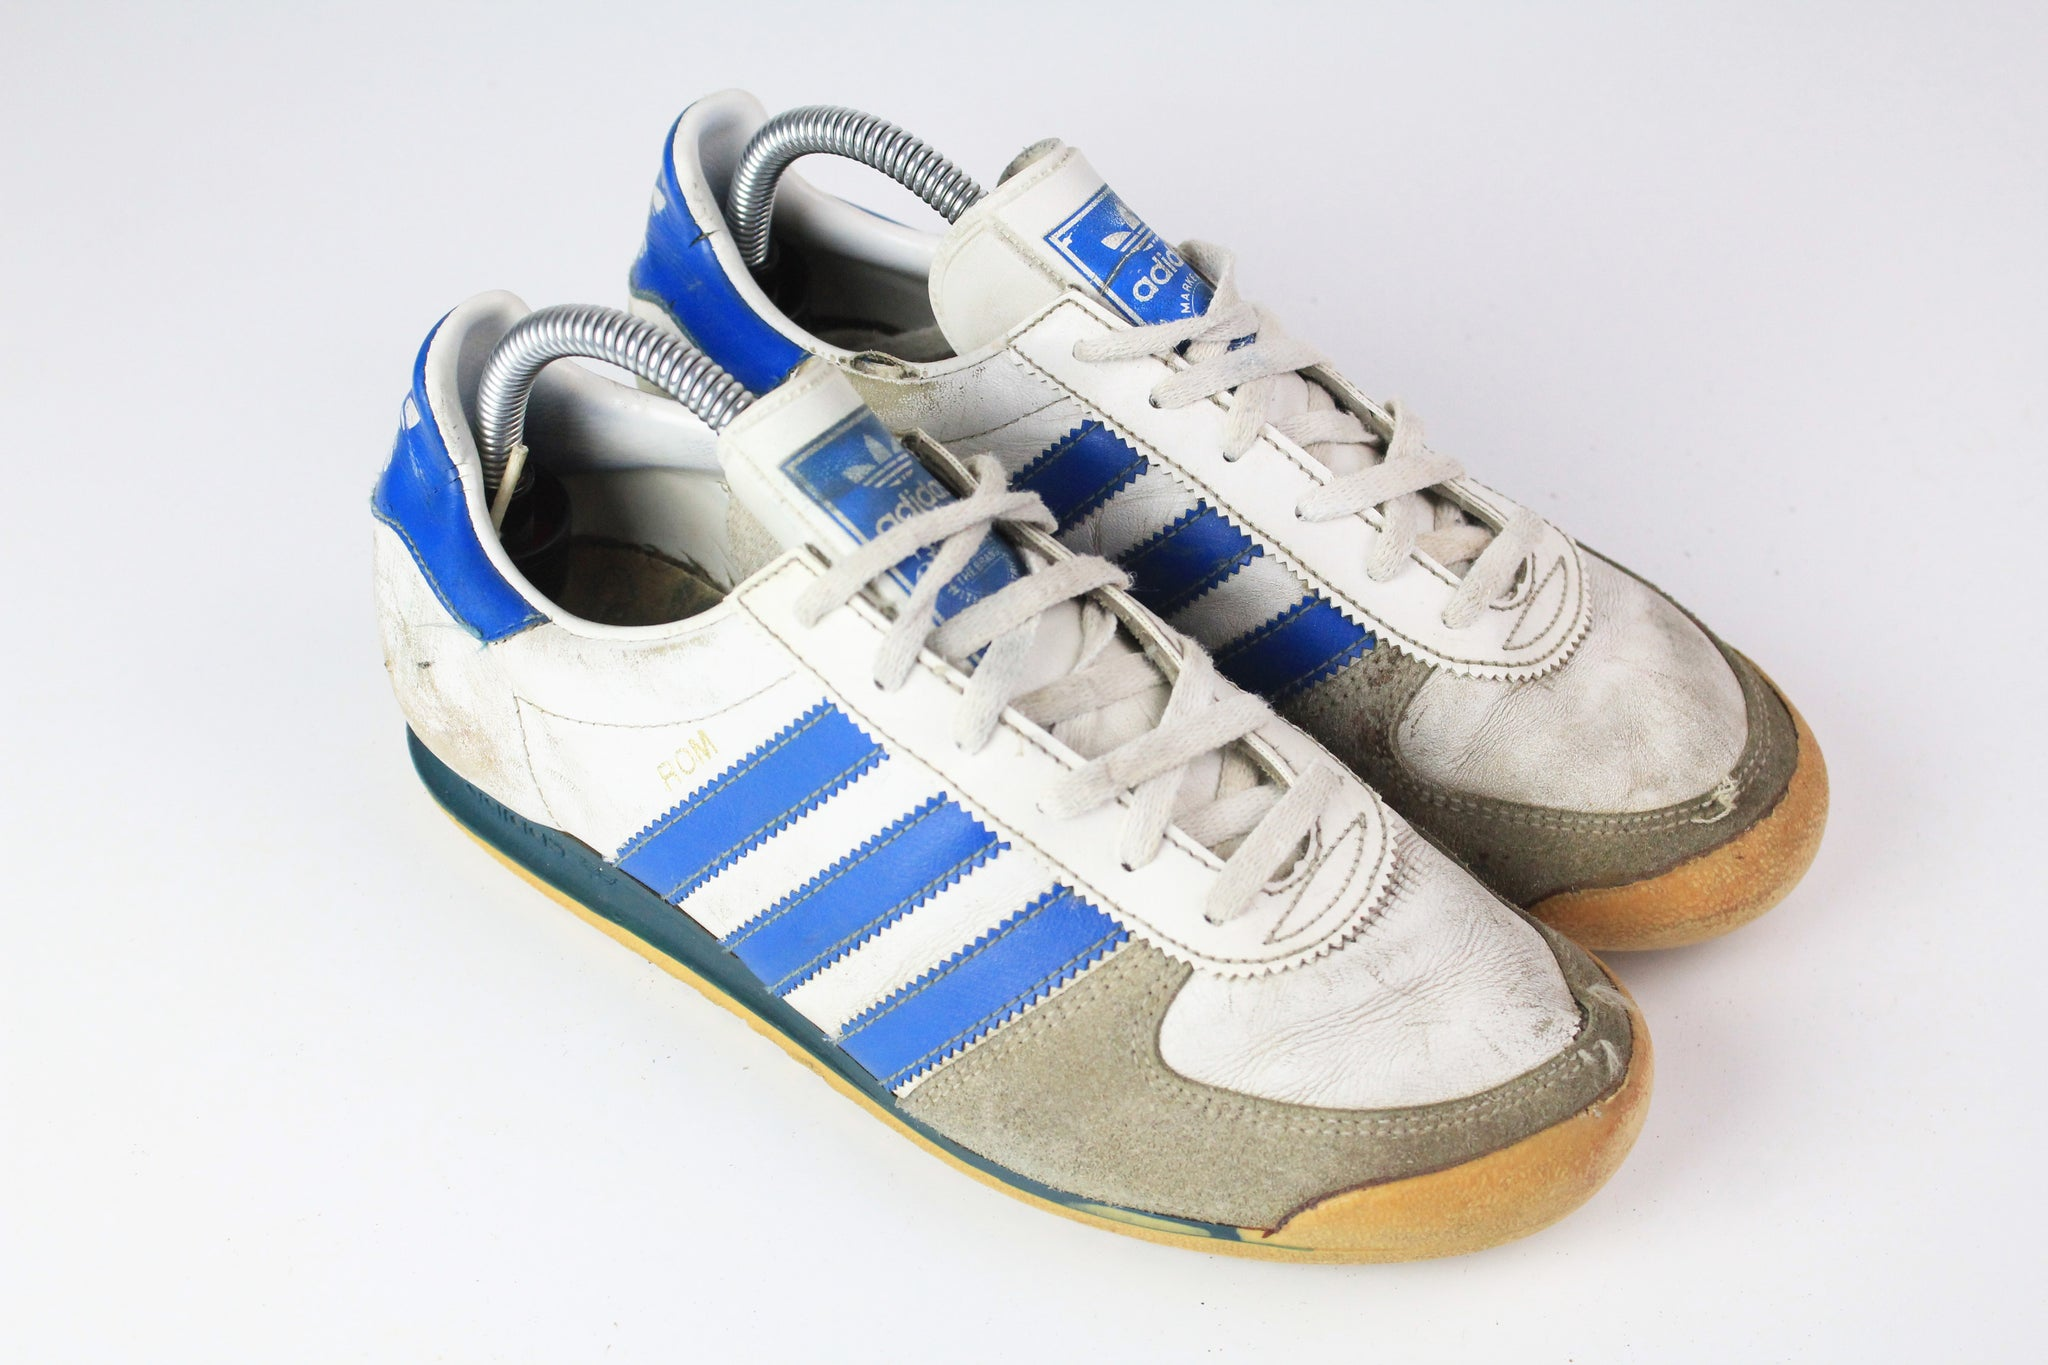 Vintage Adidas Rom Sneakers US 6 City series whit blue 90s made in Taiwan shoes trainers